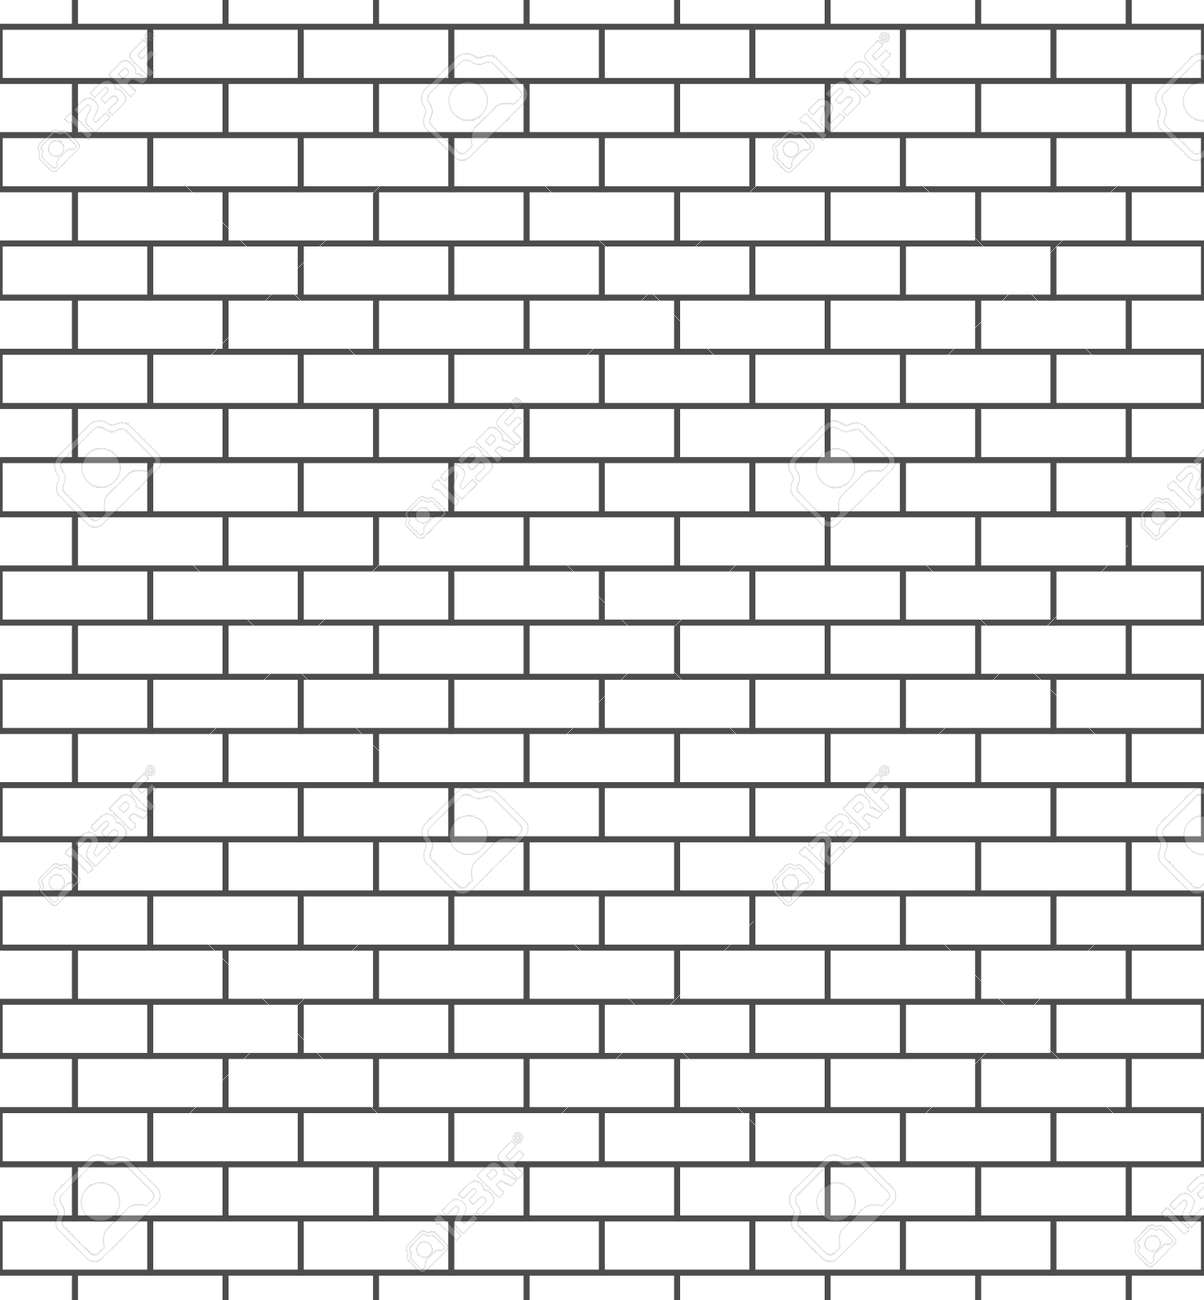 Brick Wall Seamless Pattern White And Gray Surface Exterior Background Blocks Cement Construction